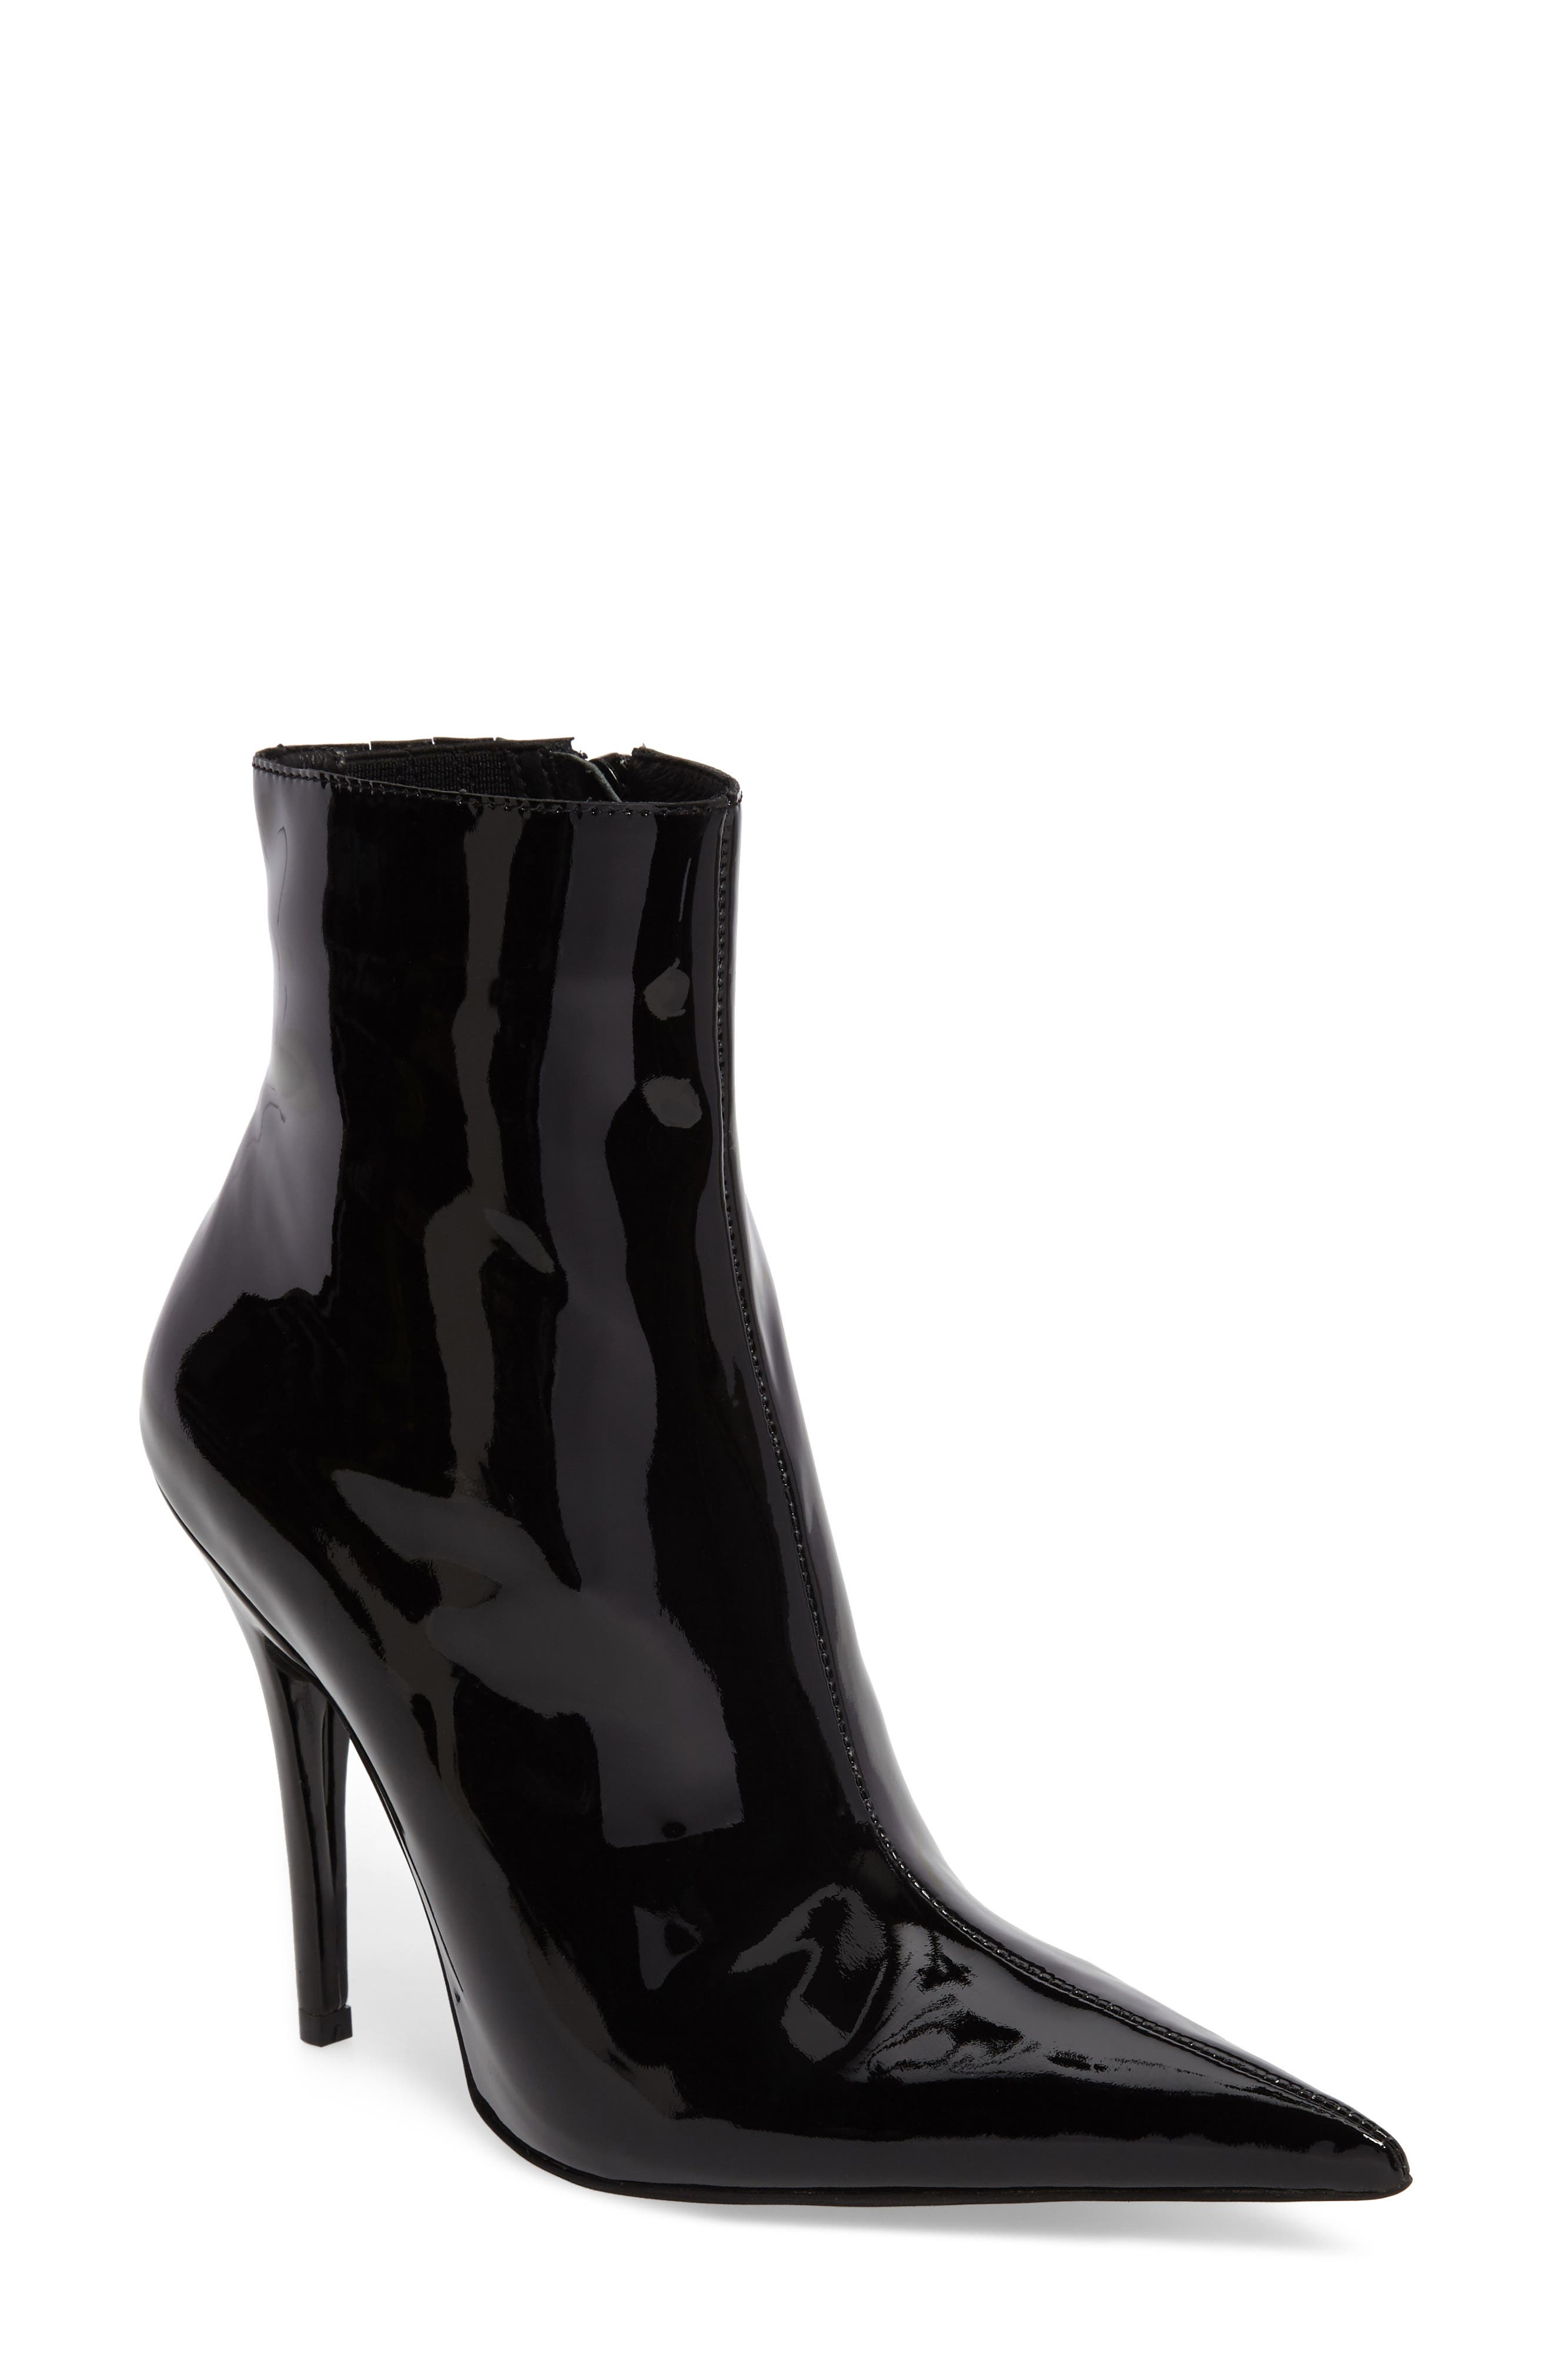 Vedette Pointy Toe Booties,                         Main,                         color, Black Patent